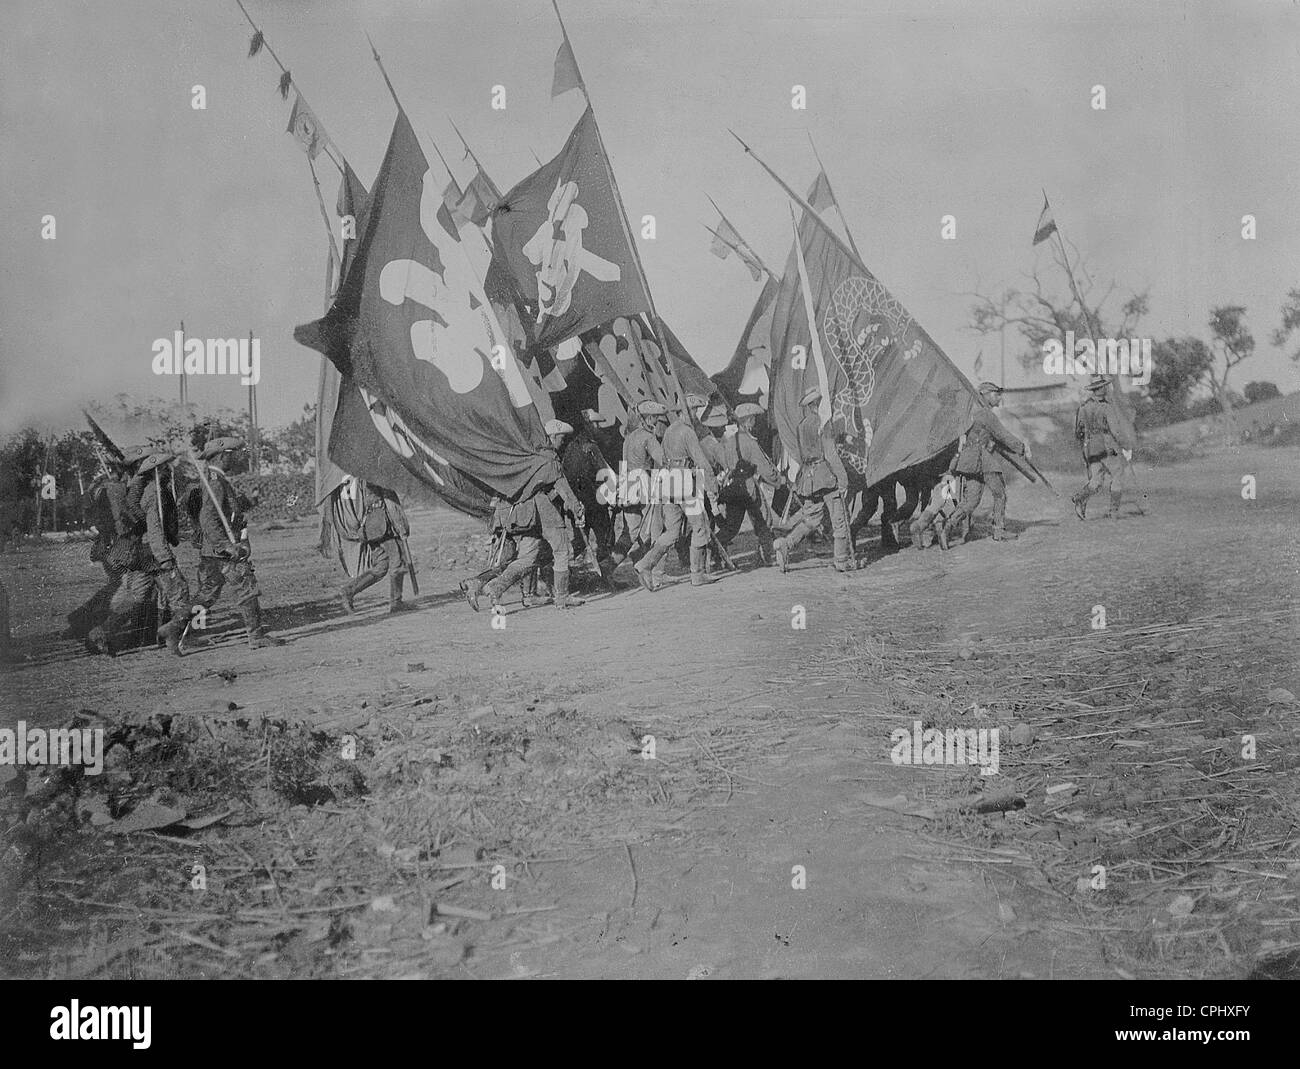 First East Asian Infantry Regiment during the Boxer Rebellion, 1900 - Stock Image